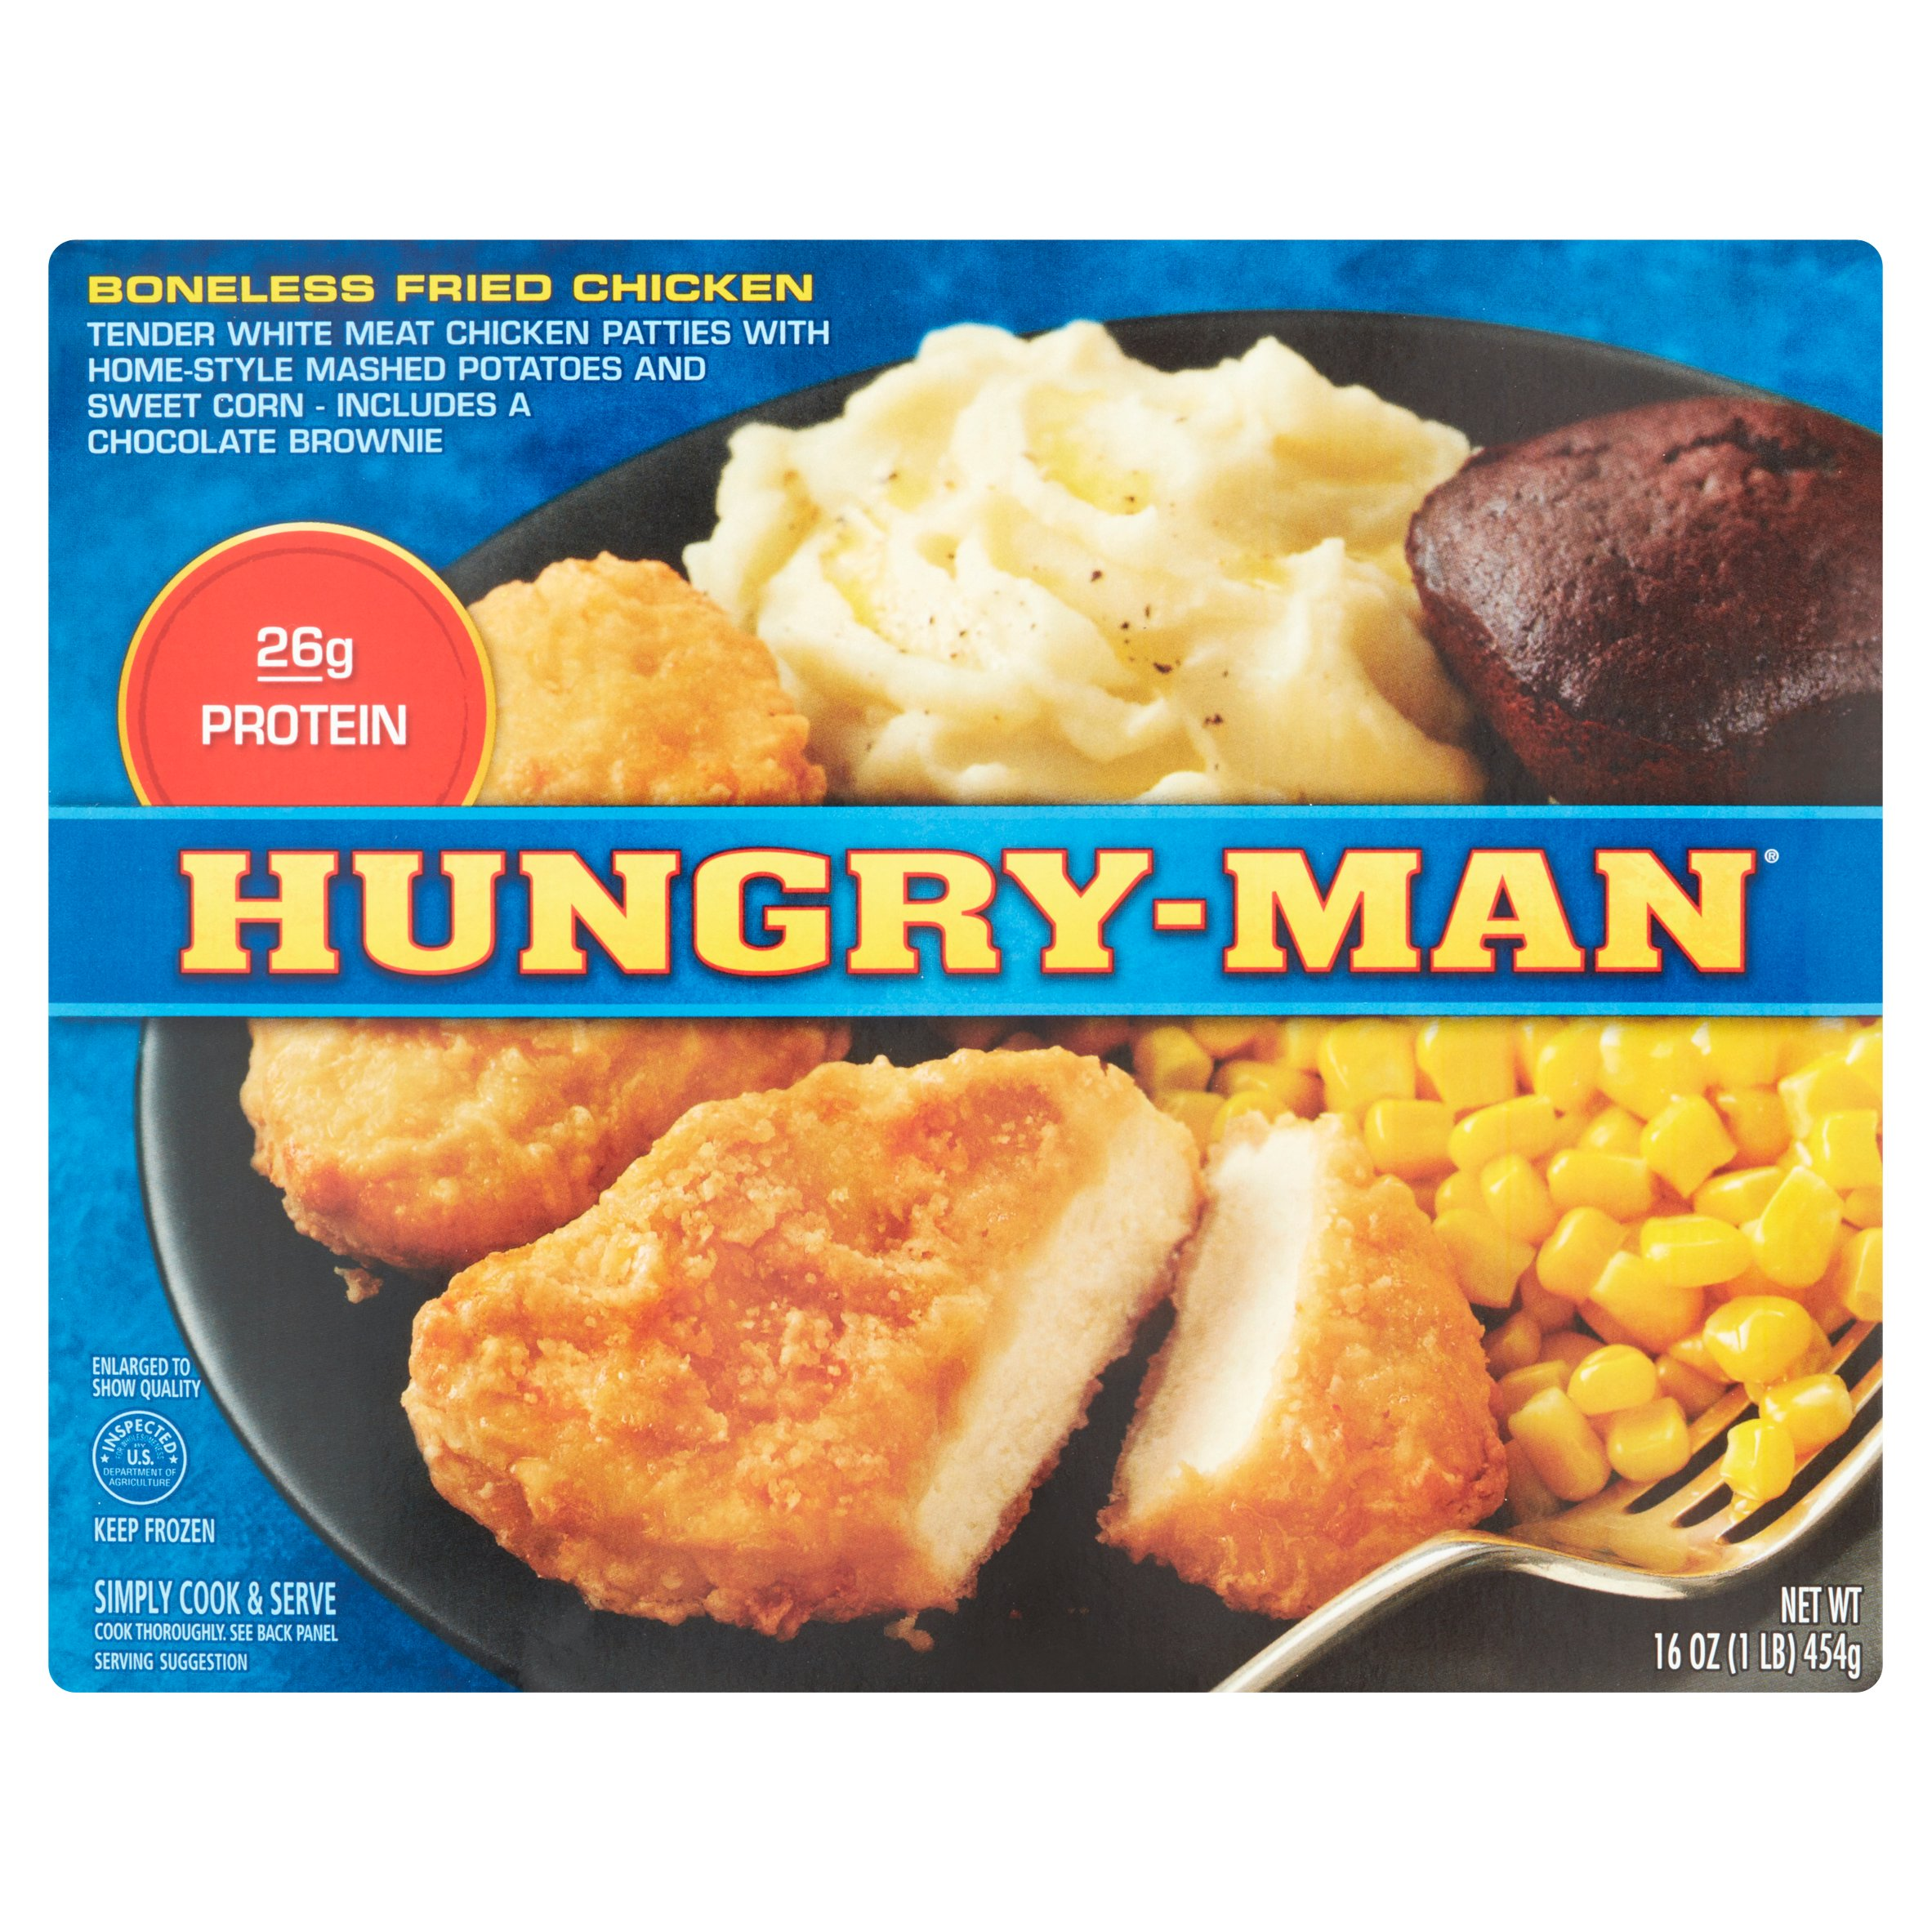 Hungry-Man® Boneless Fried Chicken Frozen Dinner 16 oz. Box